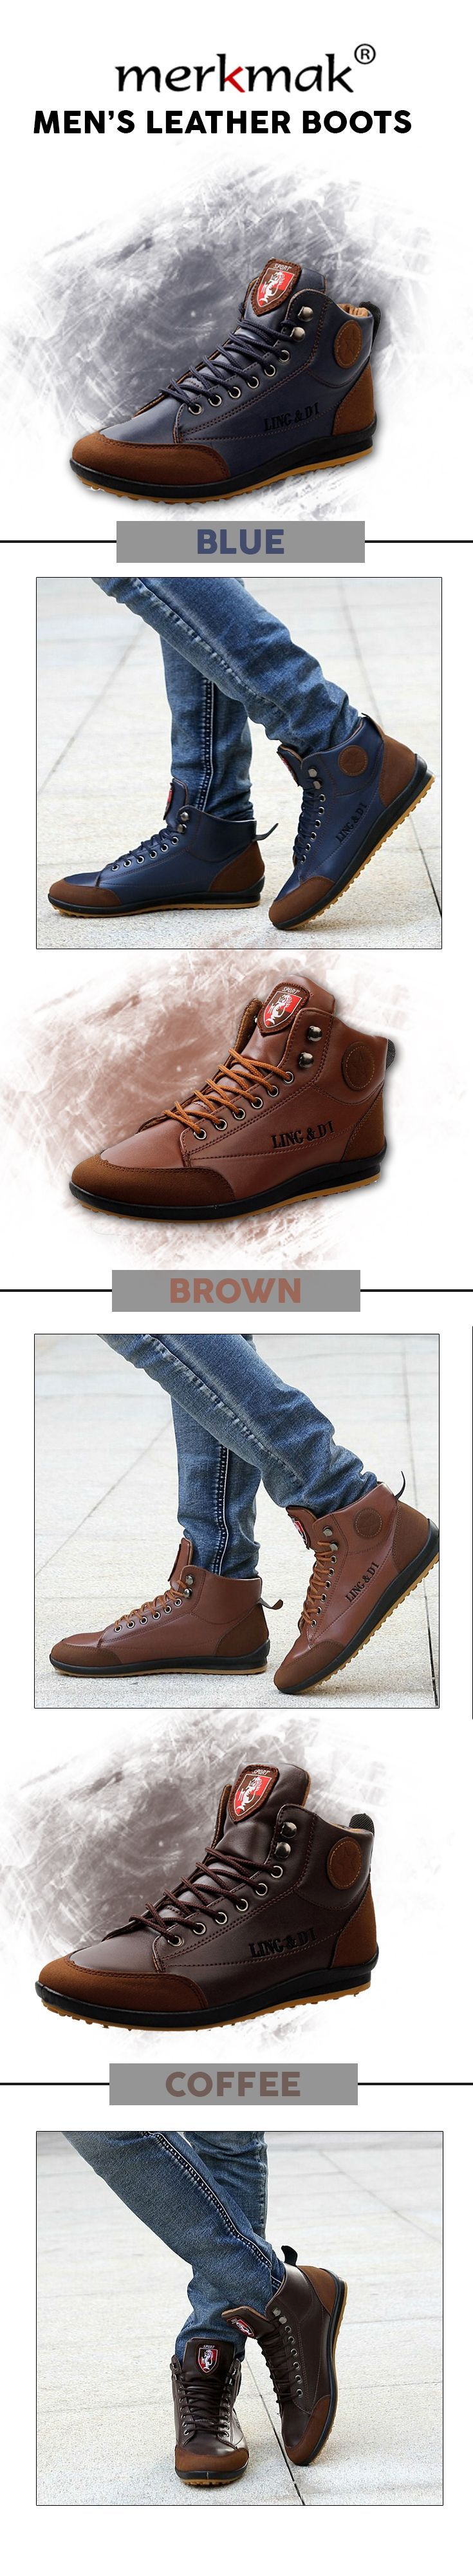 Men's leather high ankle boots - Merkmak fashion leather shoes - Men's top brand style affordable menswear #mensfashion #mensshoes #mensapparel #MensFashionBoots